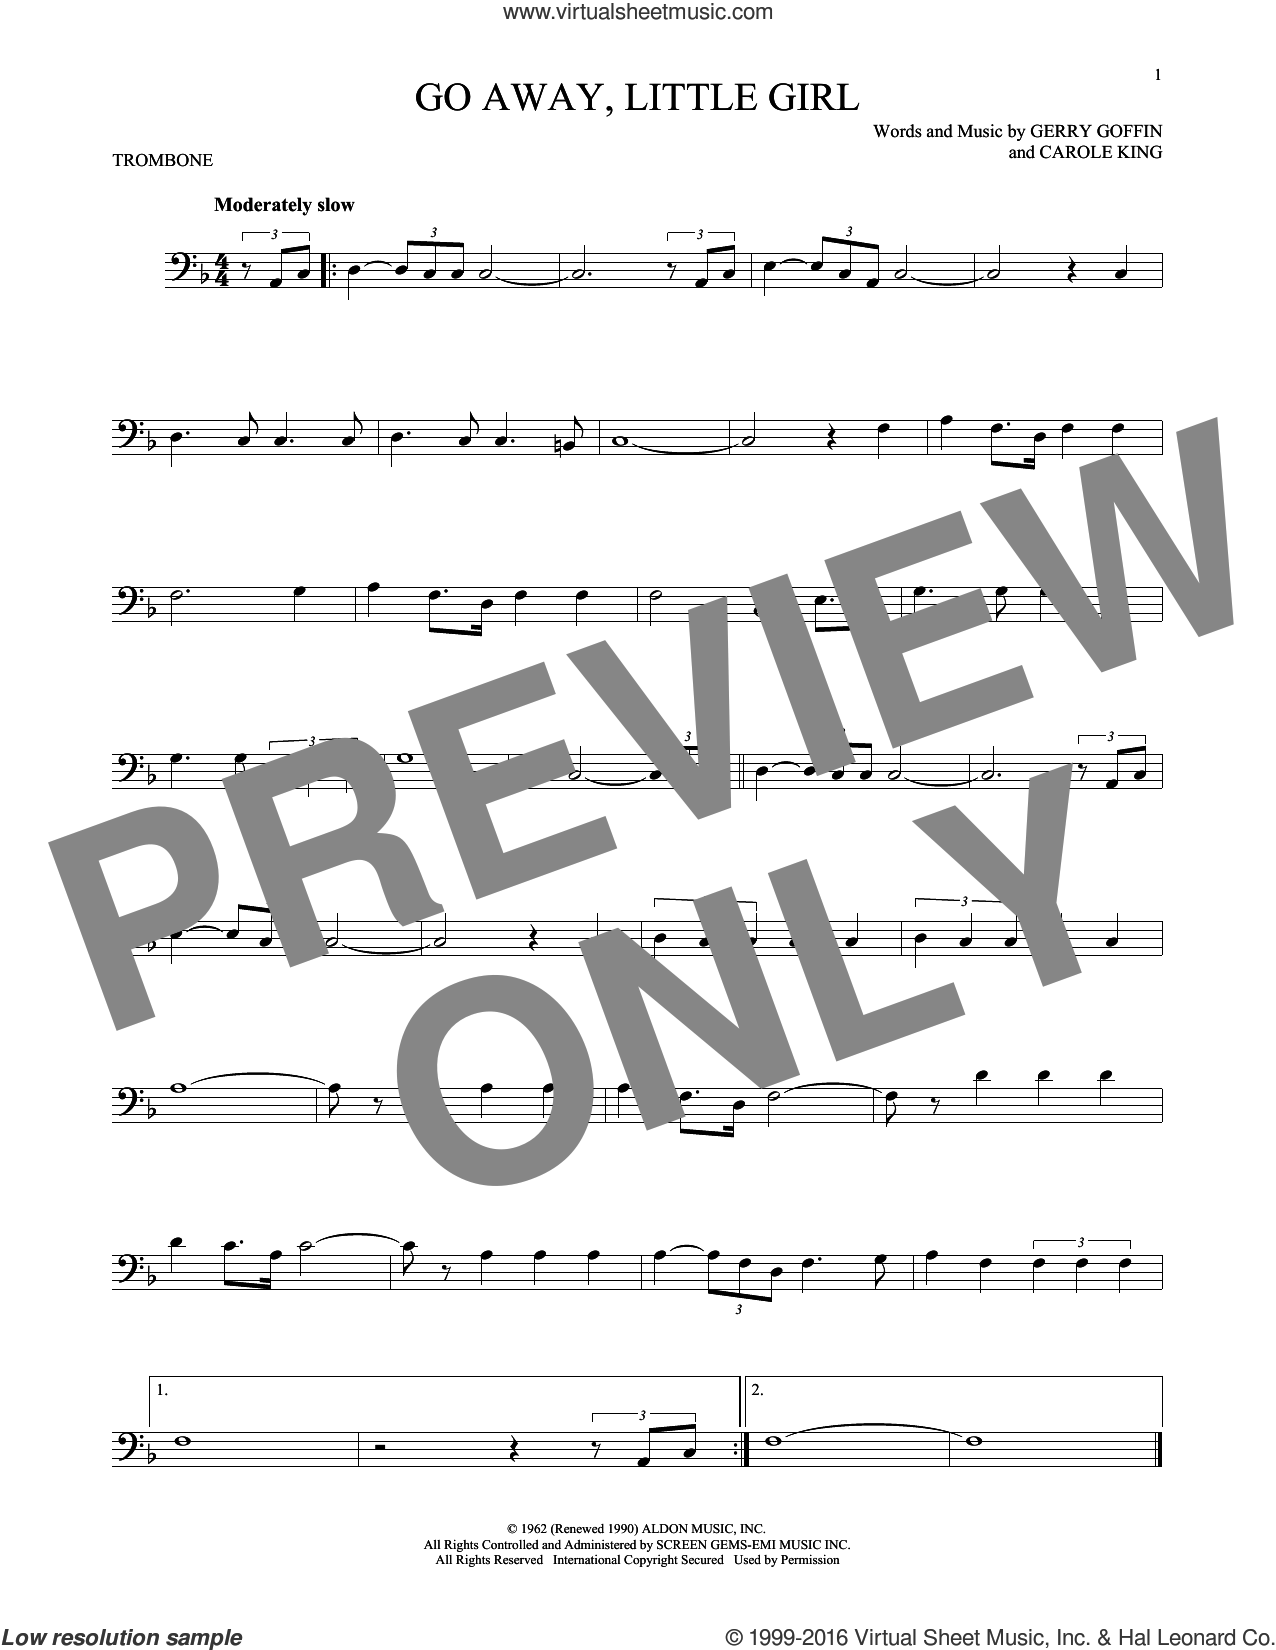 Go Away, Little Girl sheet music for trombone solo by Donny Osmond, Steve Lawrence, Carole King and Gerry Goffin, intermediate skill level